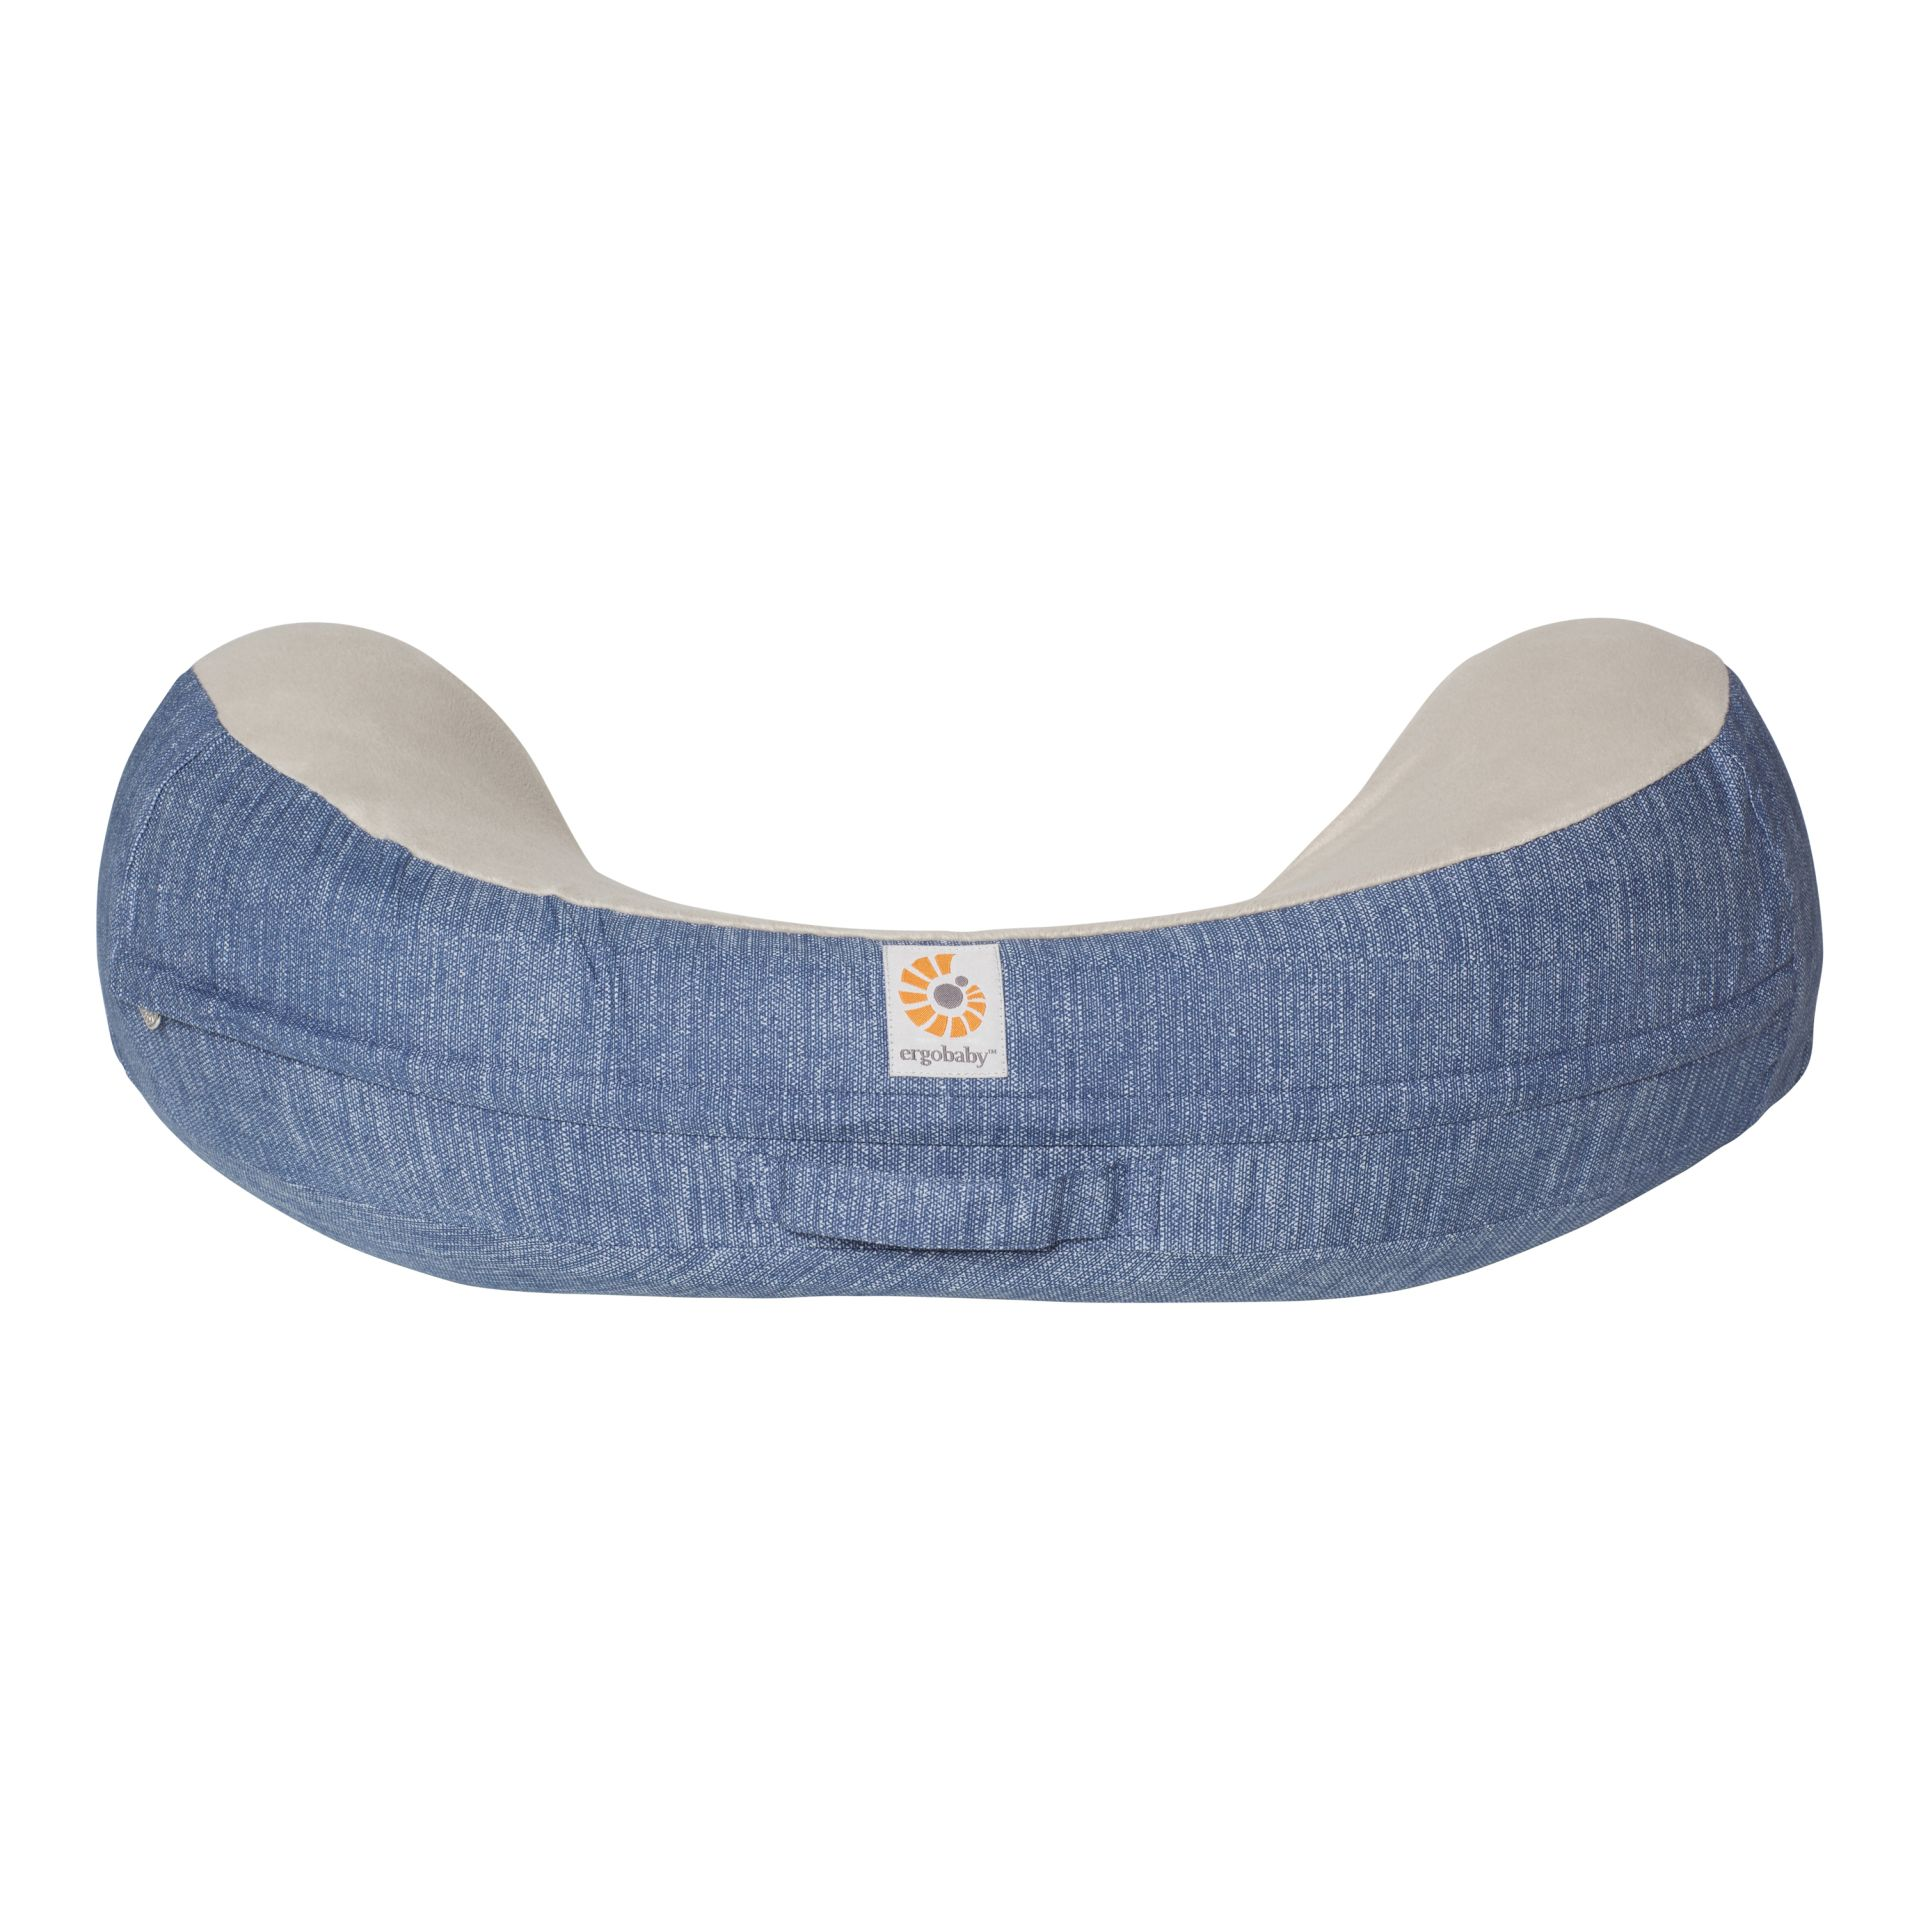 Ergobaby Nursing Pillow Vintage Blue Buy At Kidsroom